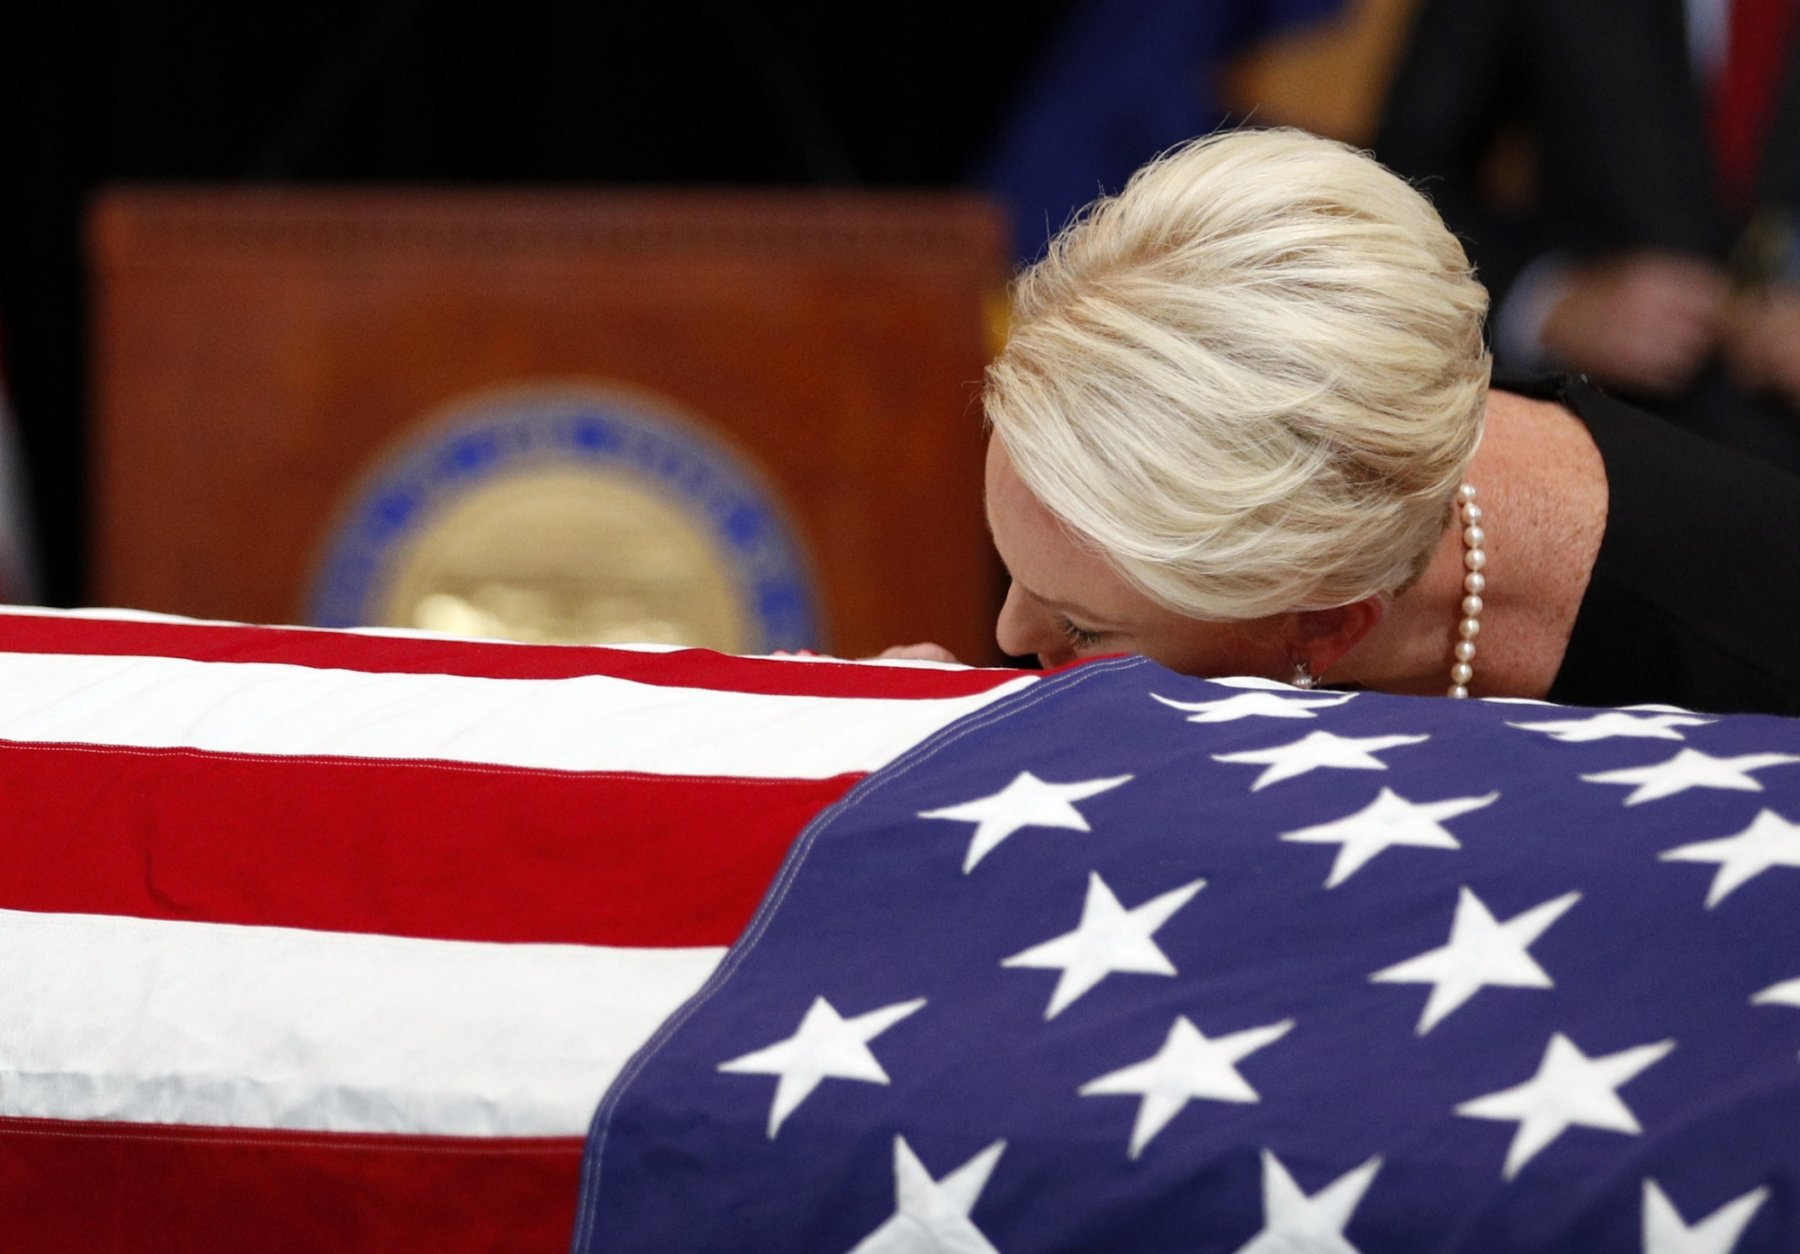 Cindy McCain, wife of, Sen. John McCain, R-Ariz. lays her head on the casket during a memorial service at the Arizona Capitol on Wednesday, Aug. 29, 2018, in Phoenix. (AP Photo/Jae C. Hong, Pool)